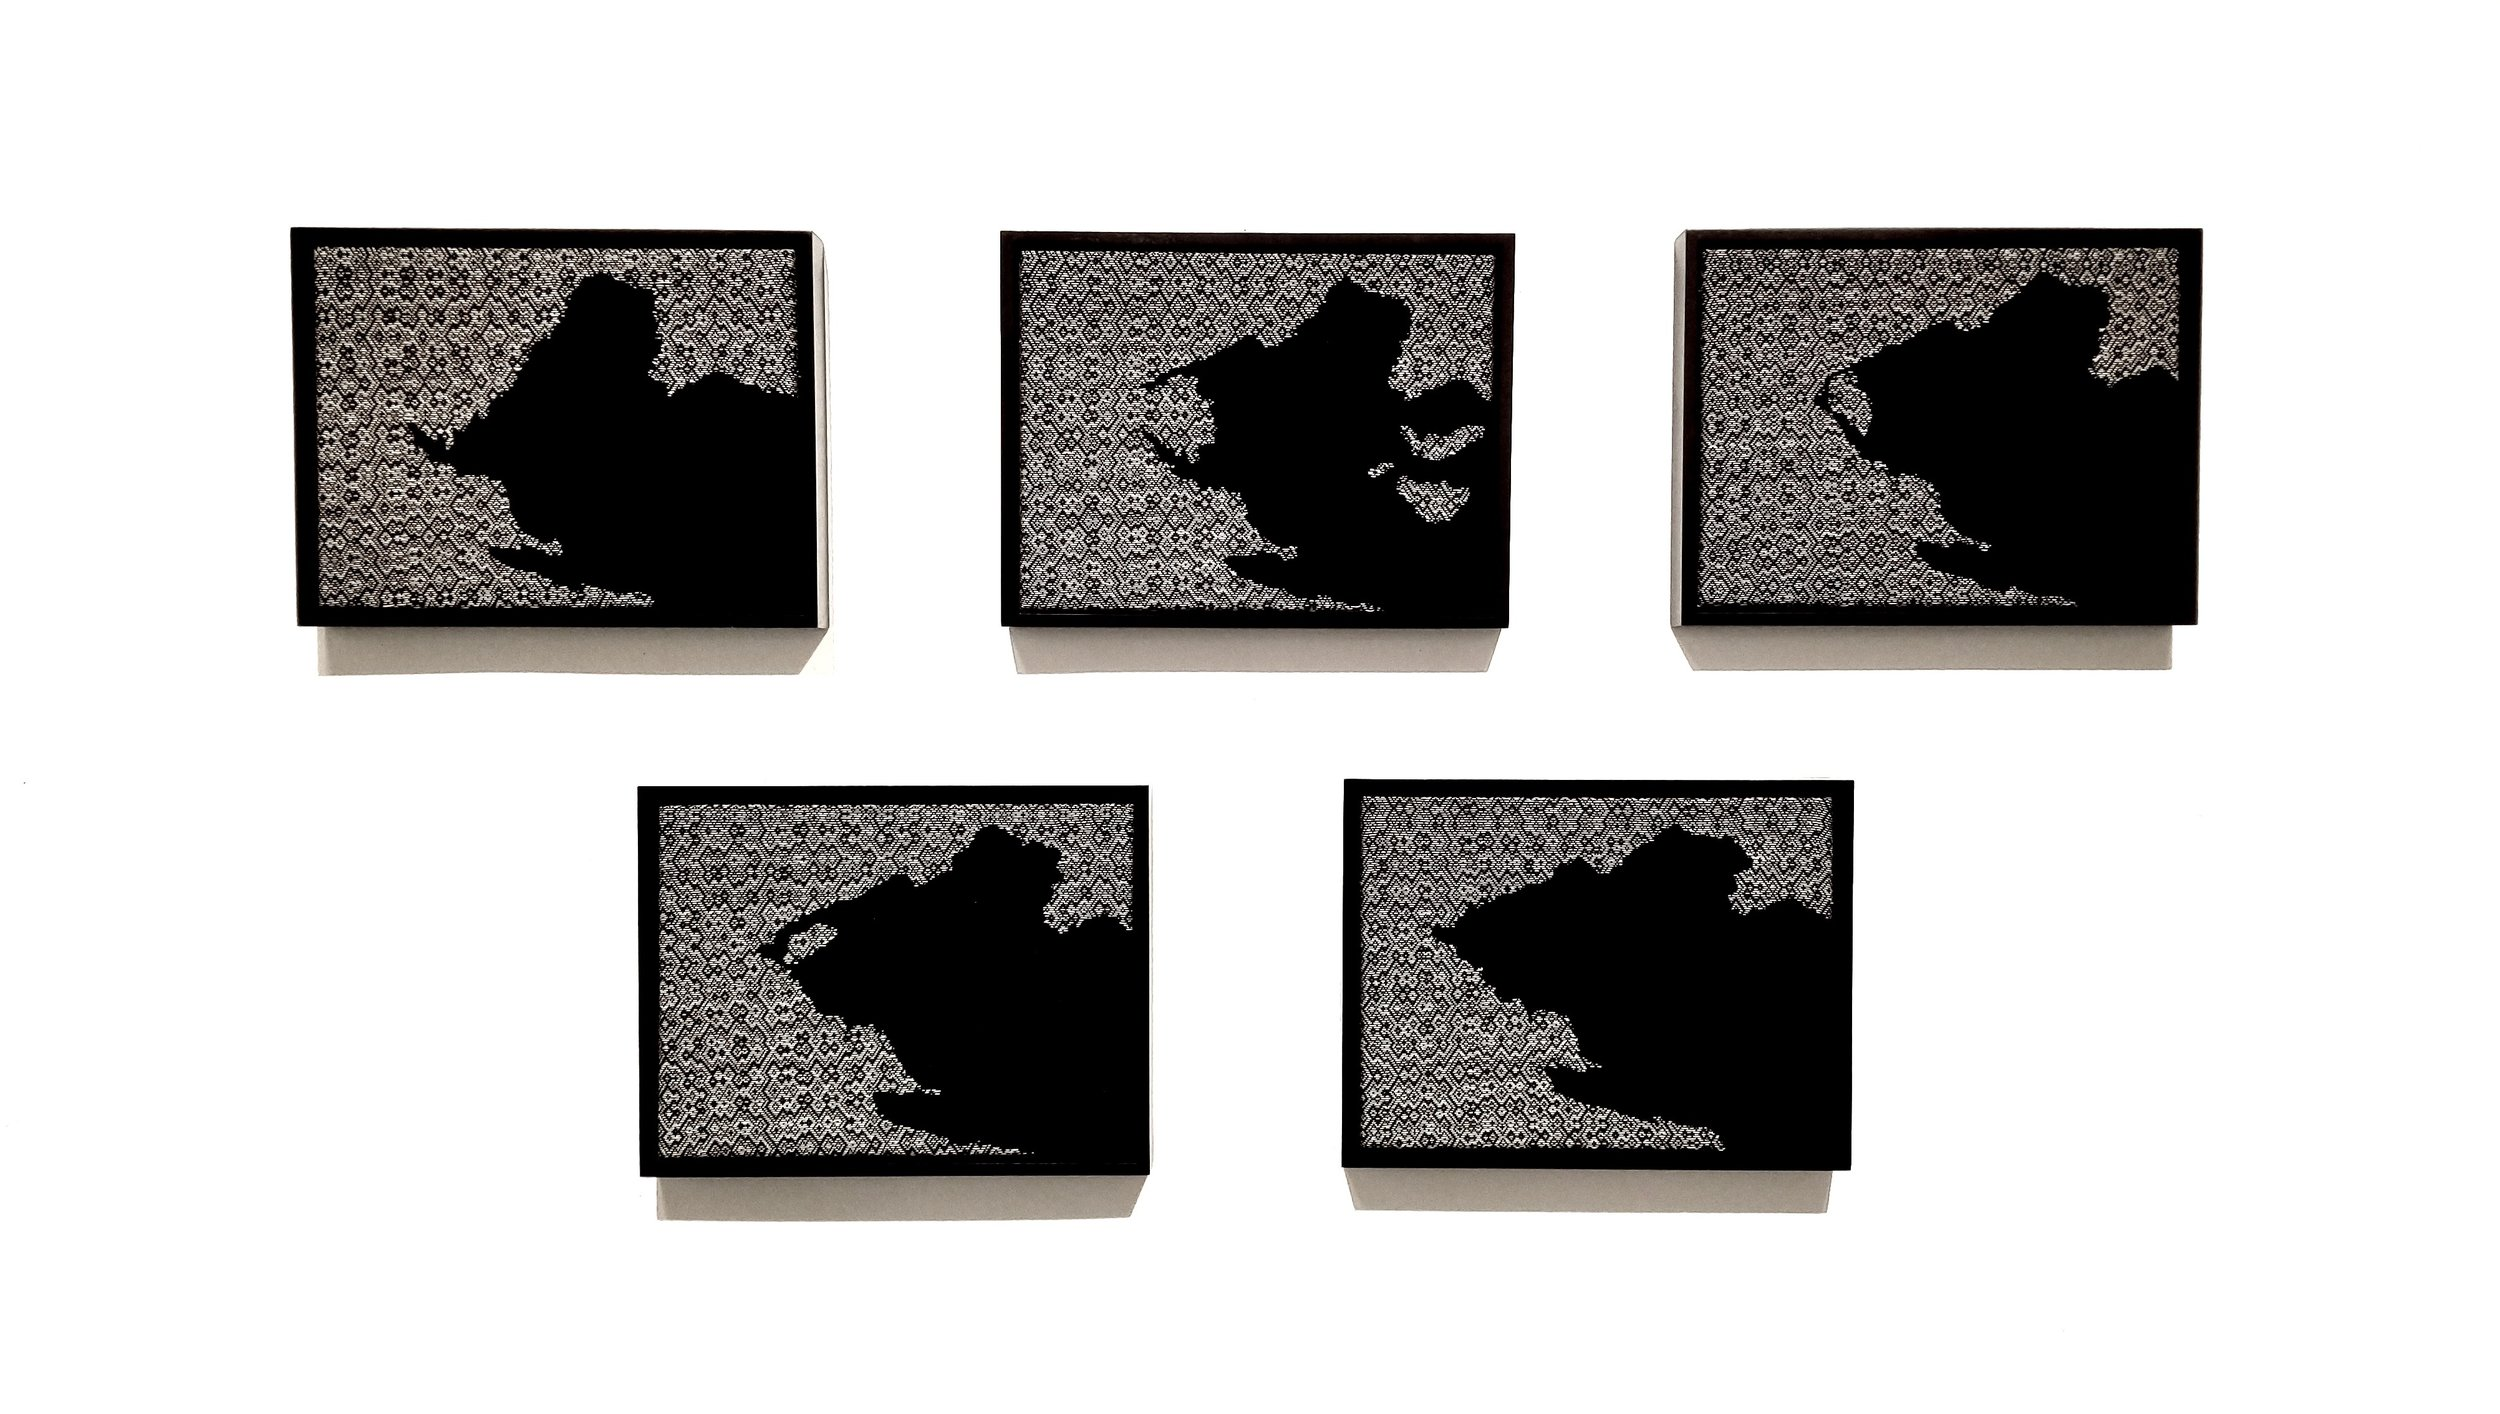 """(Ant)arctic Icebergs   2019  5 panel set, 17"""" x 13"""" x 2"""" each  Handwoven wool and cottolin"""